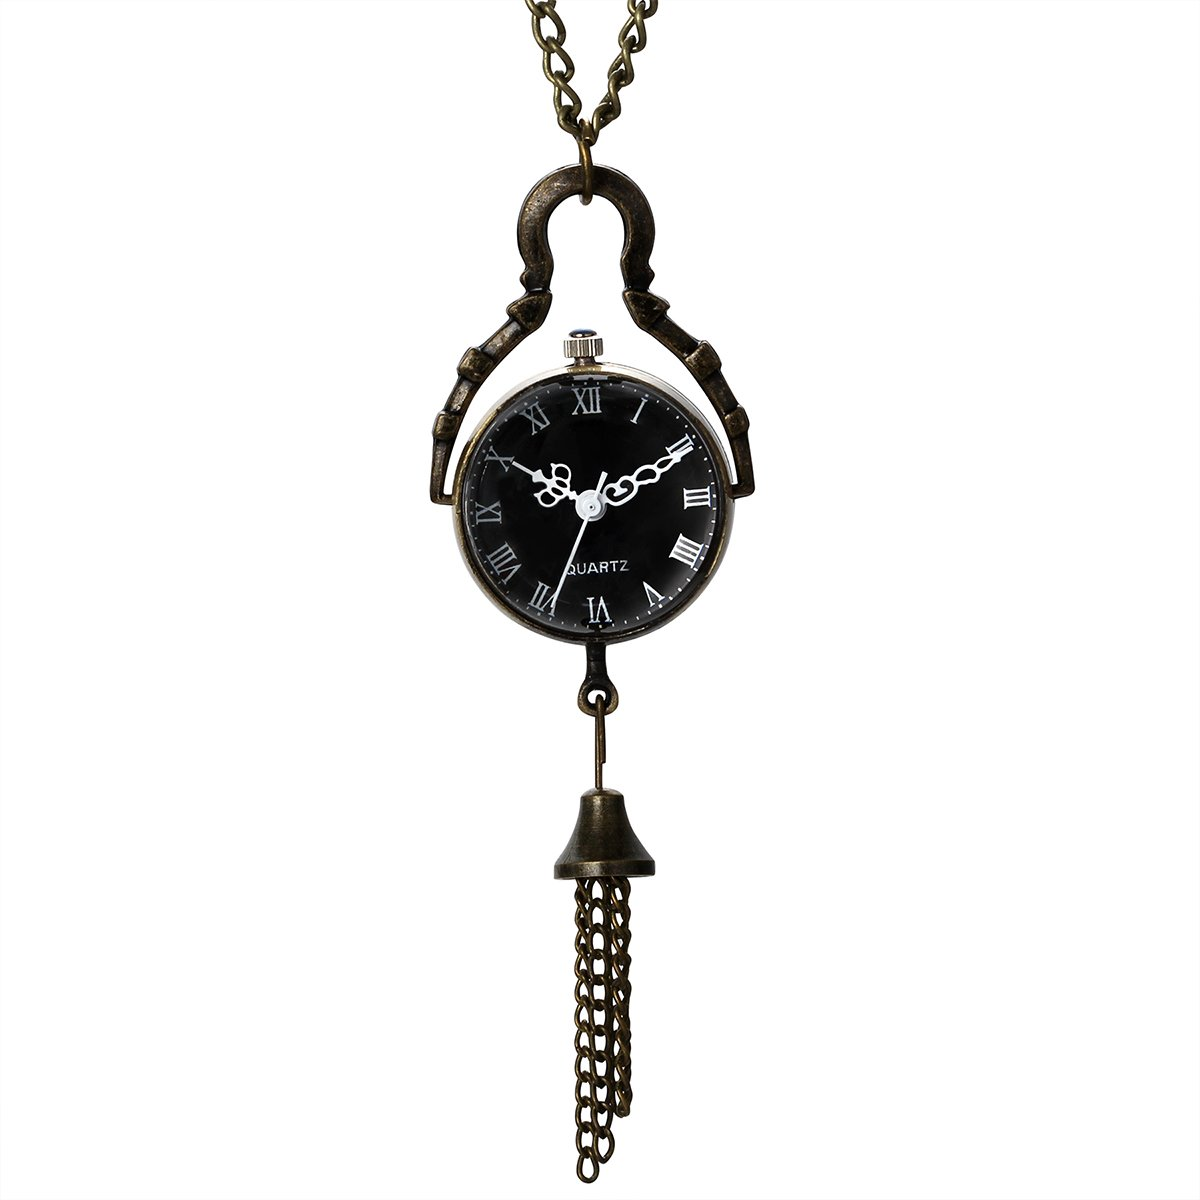 JewelryWe Mothers Day Gift Vintage Retro Black Dial Quartz Ball Glass Pocket Watch Necklace 31.5 inch Chain Steampunk (with Gift Bag)